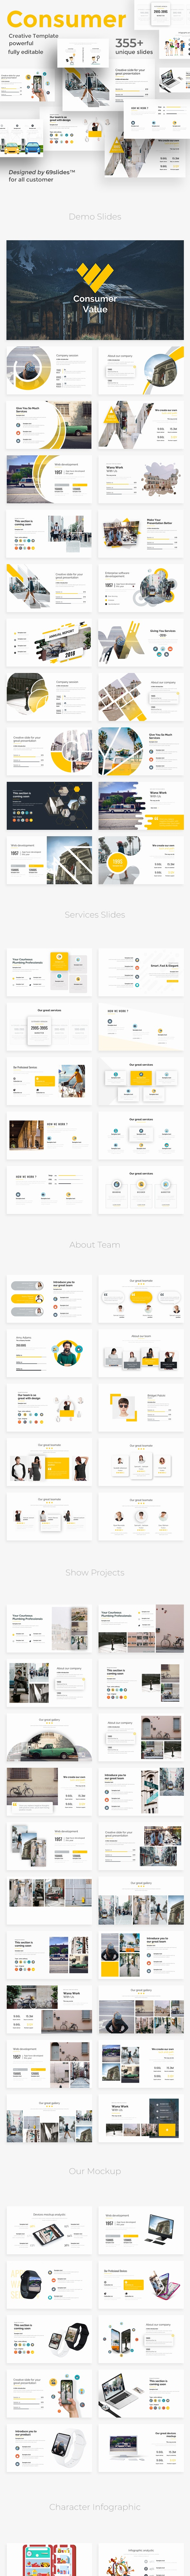 Consumer Value Pitch Deck Keynote Tempate - Business Keynote Templates